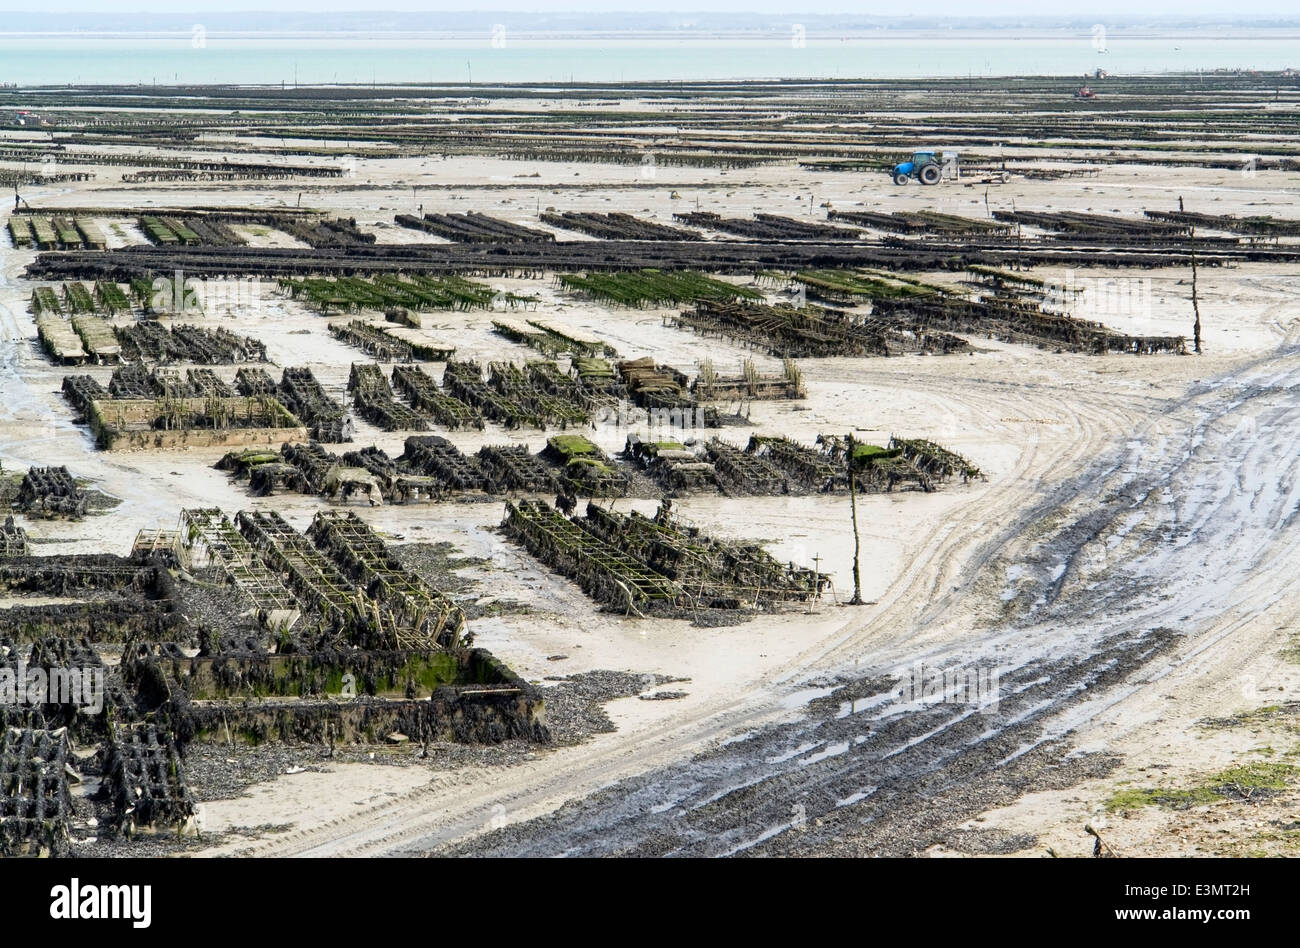 lots of oyster beds at a town in Brittany named Cancale Stock Photo